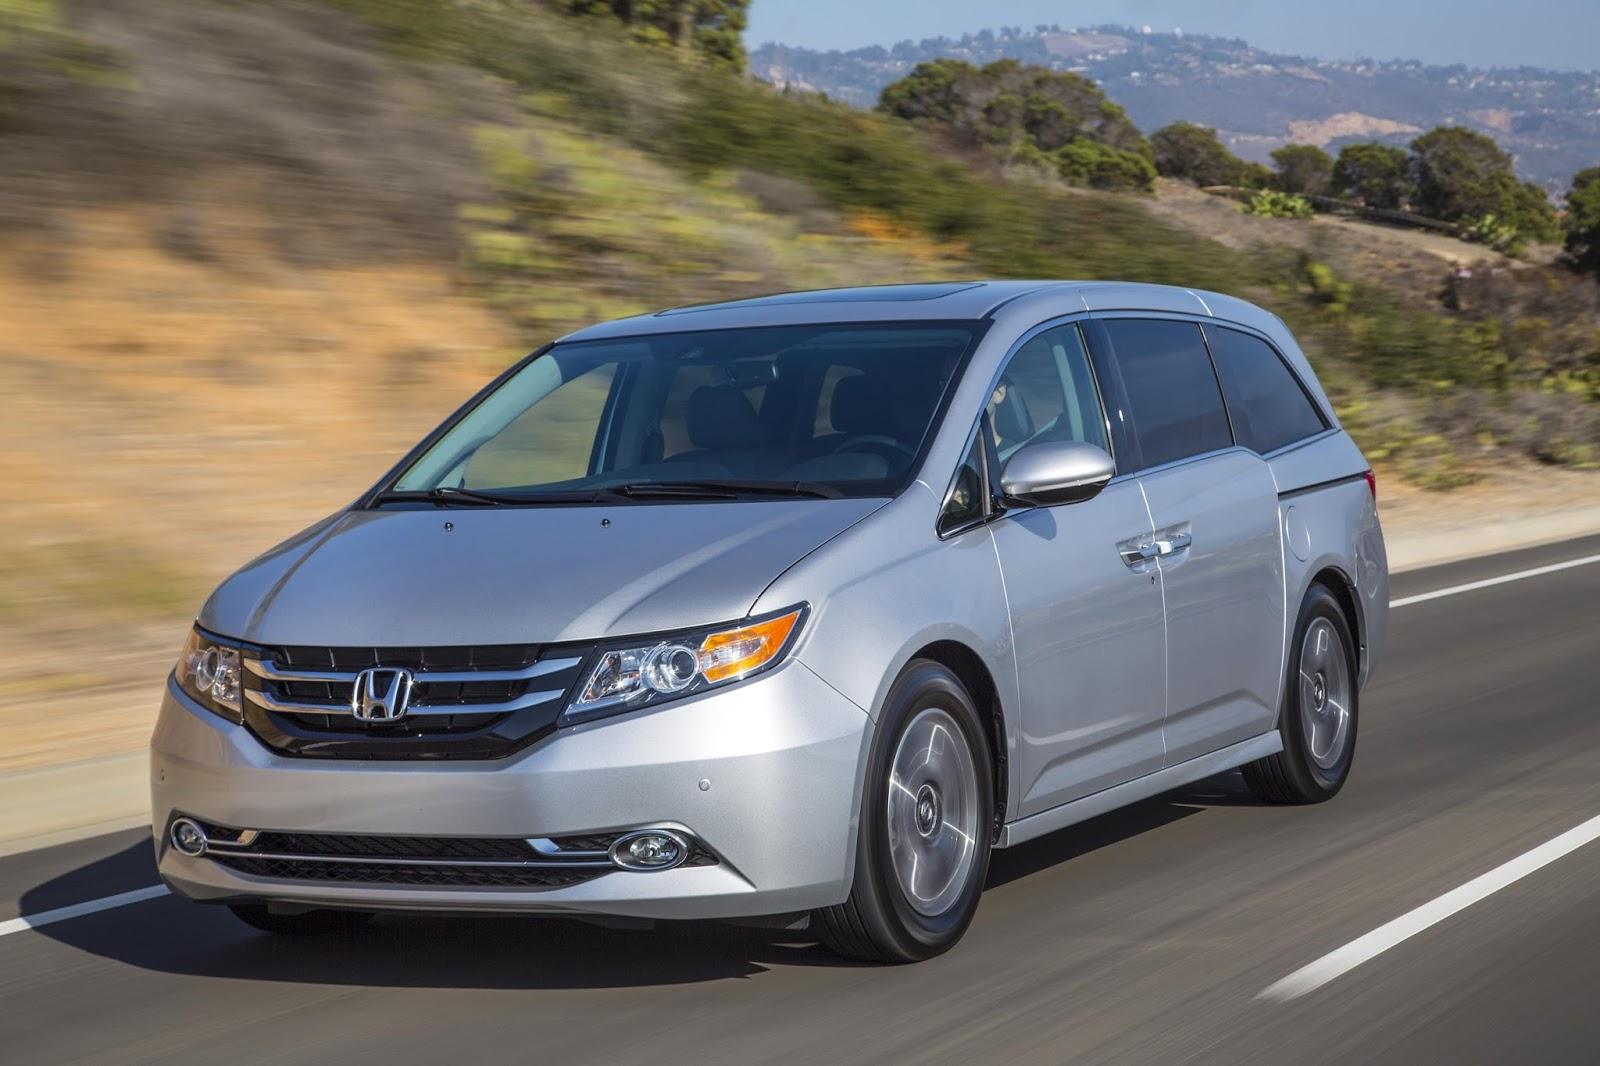 The 2017 Honda Odyssey Continues To Offer Class Leading EPA Fuel Economy  Ratings Of 19/27/22 Mpg 4city/highway/combined Along With A Comprehensive  Selection ...